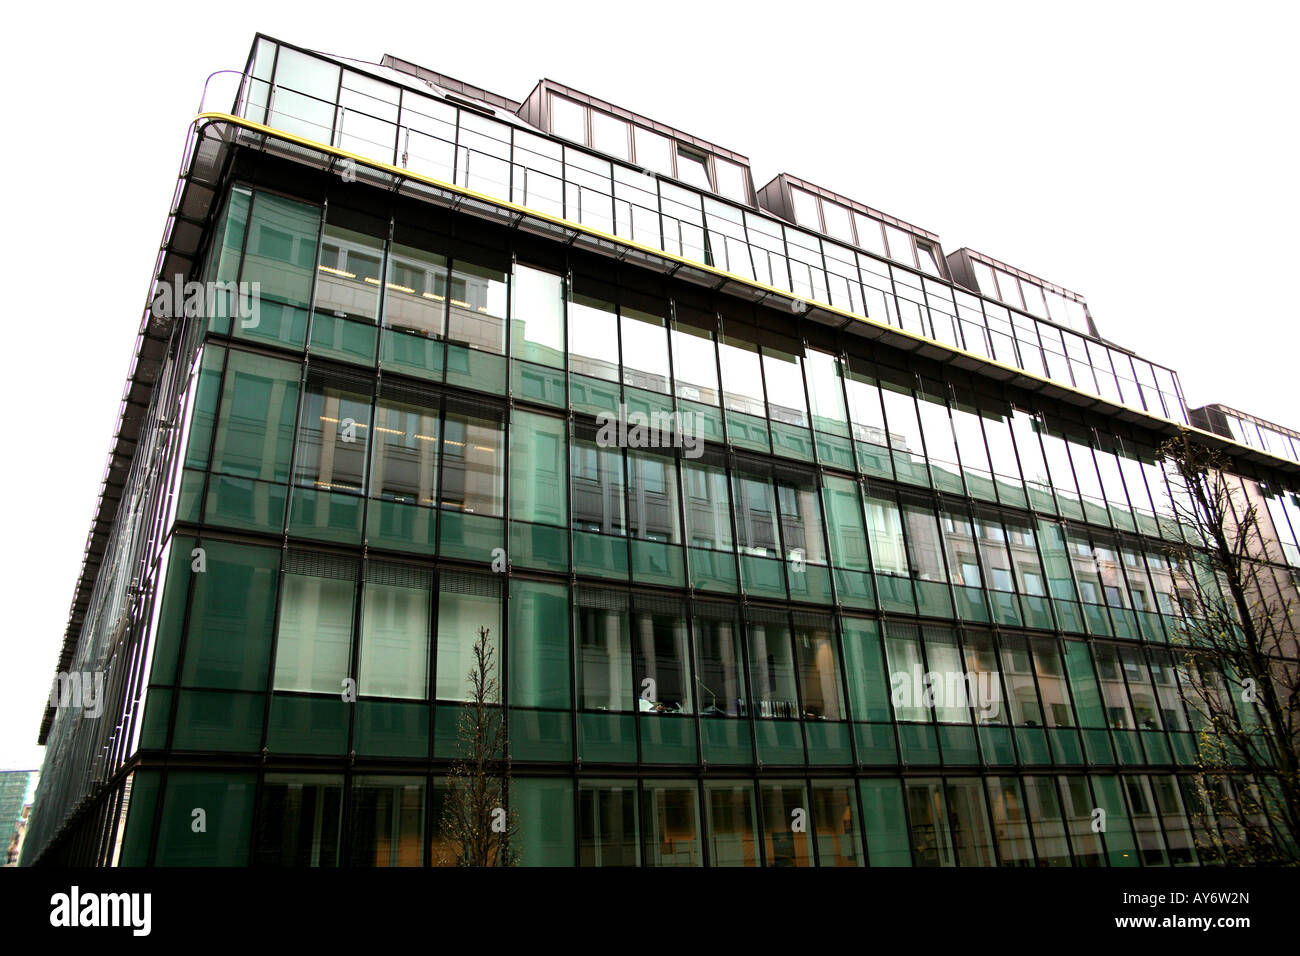 One of the buildings housing the Competition Commission of the EC in Brussels - Stock Image